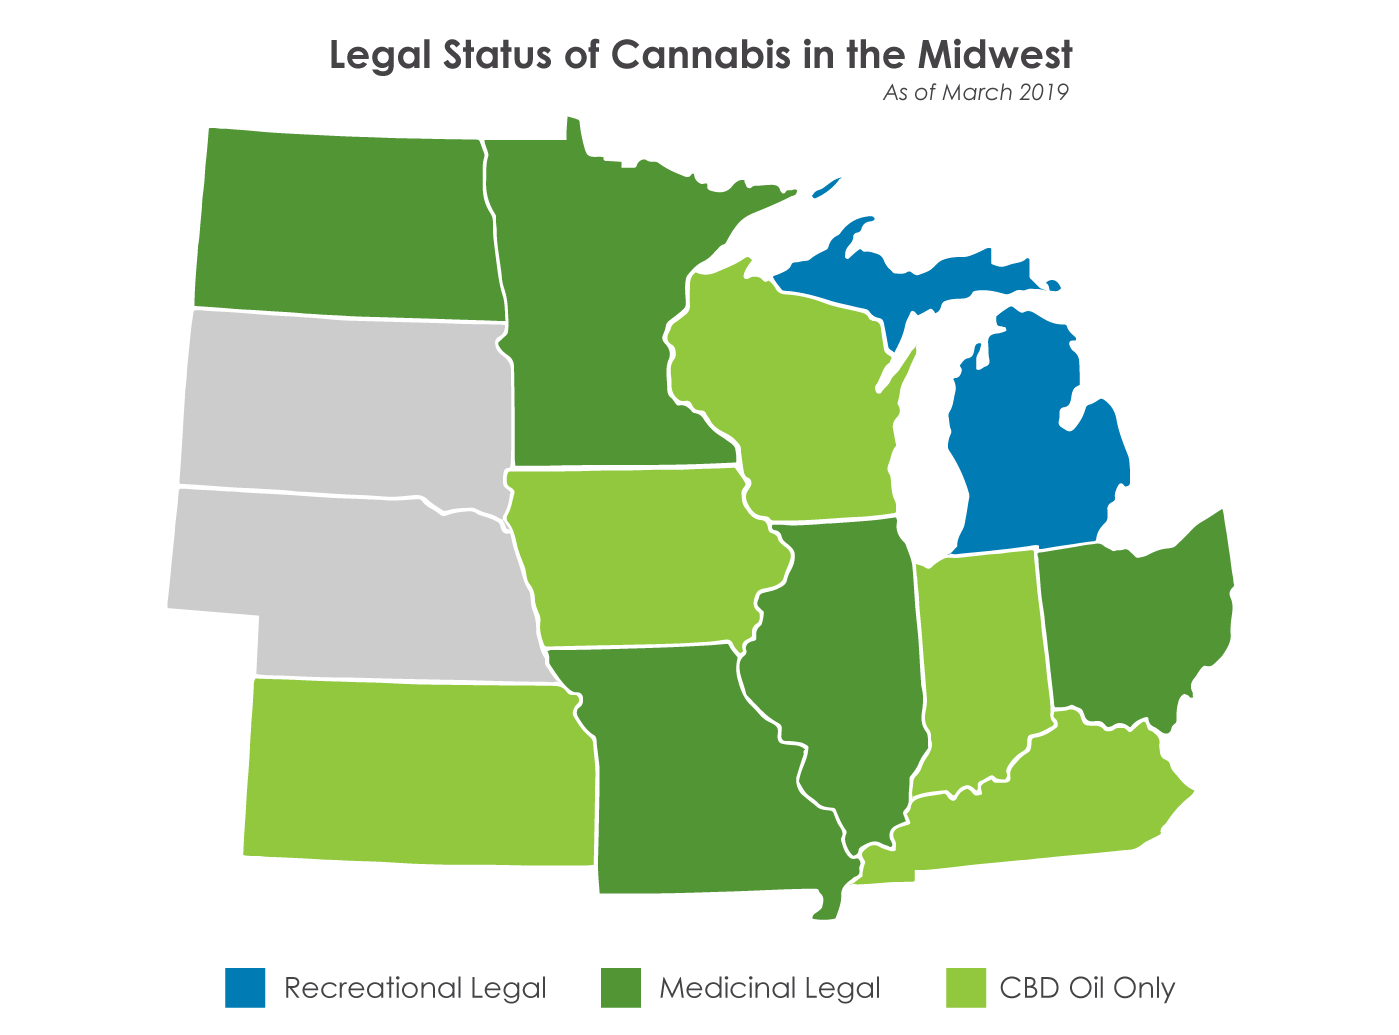 map of midwest states with color coding for legal status: recreational legal, medicinal legal or CBD oil only